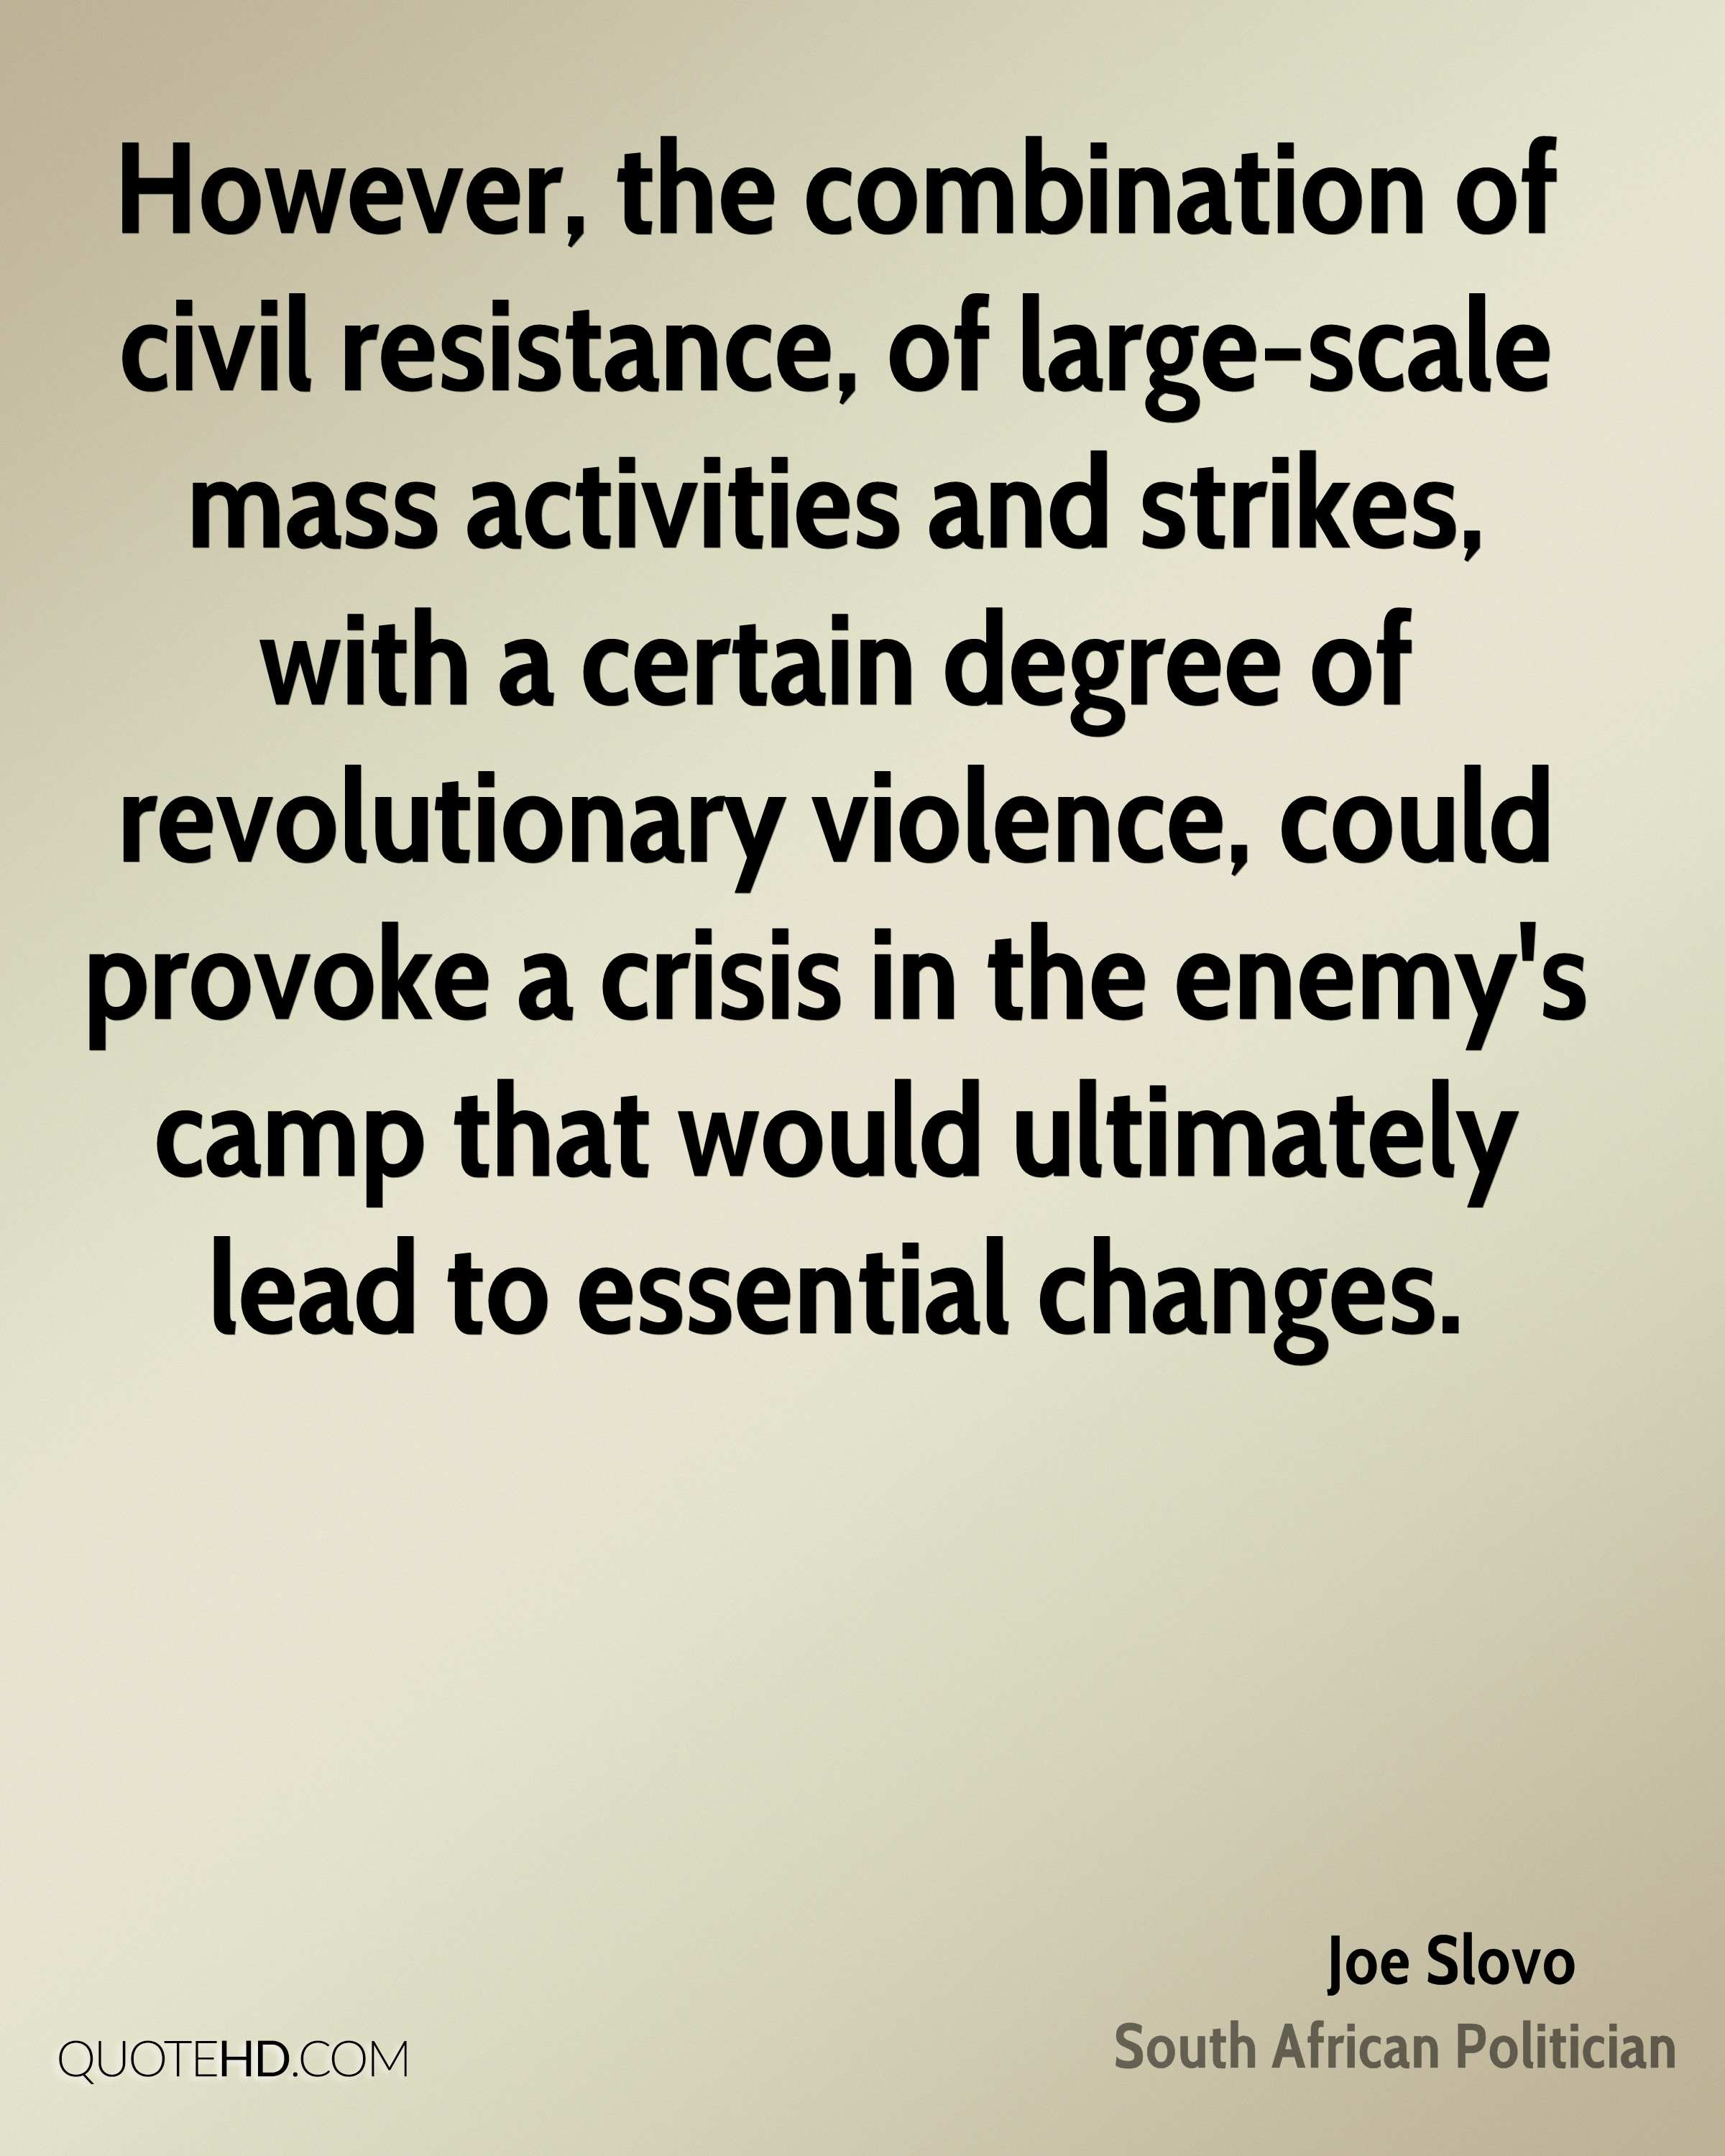 However, the combination of civil resistance, of large-scale mass activities and strikes, with a certain degree of revolutionary violence, could provoke a crisis in the enemy's camp that would ultimately lead to essential changes.